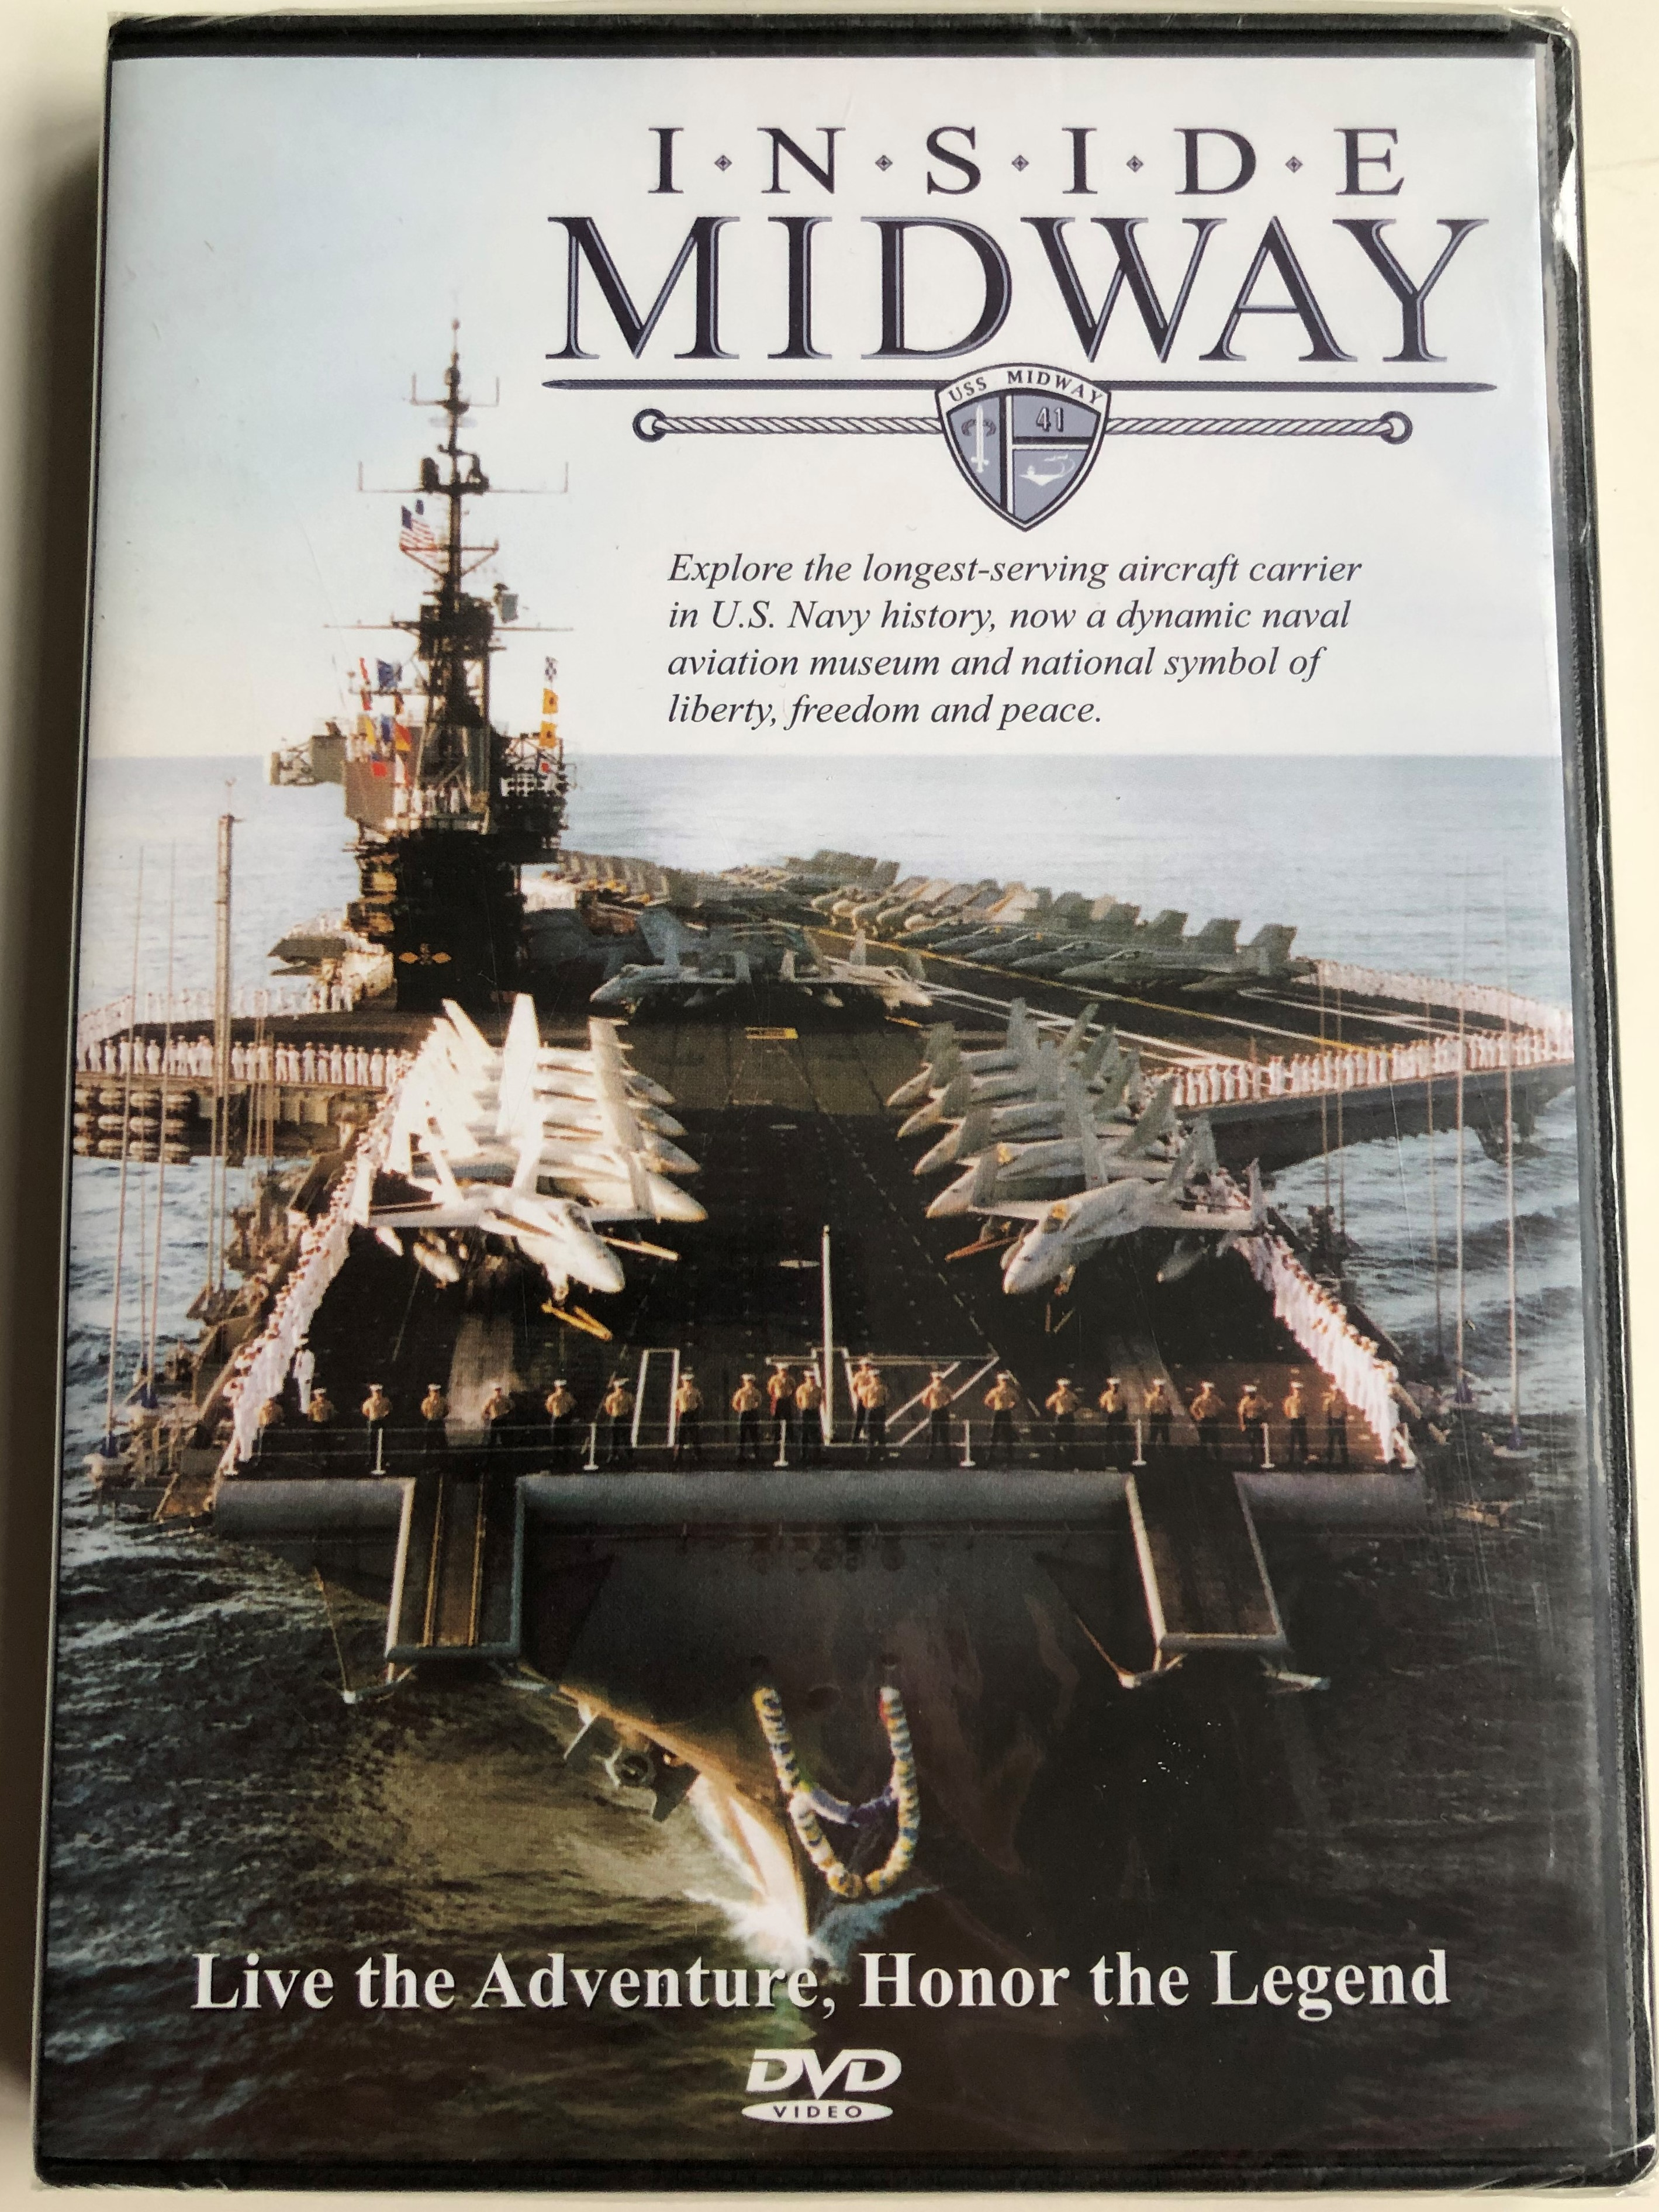 inside-uss-midway-dvd-2007-explore-the-longest-serving-aircraf-carrier-in-u.s-navy-history-1.jpg